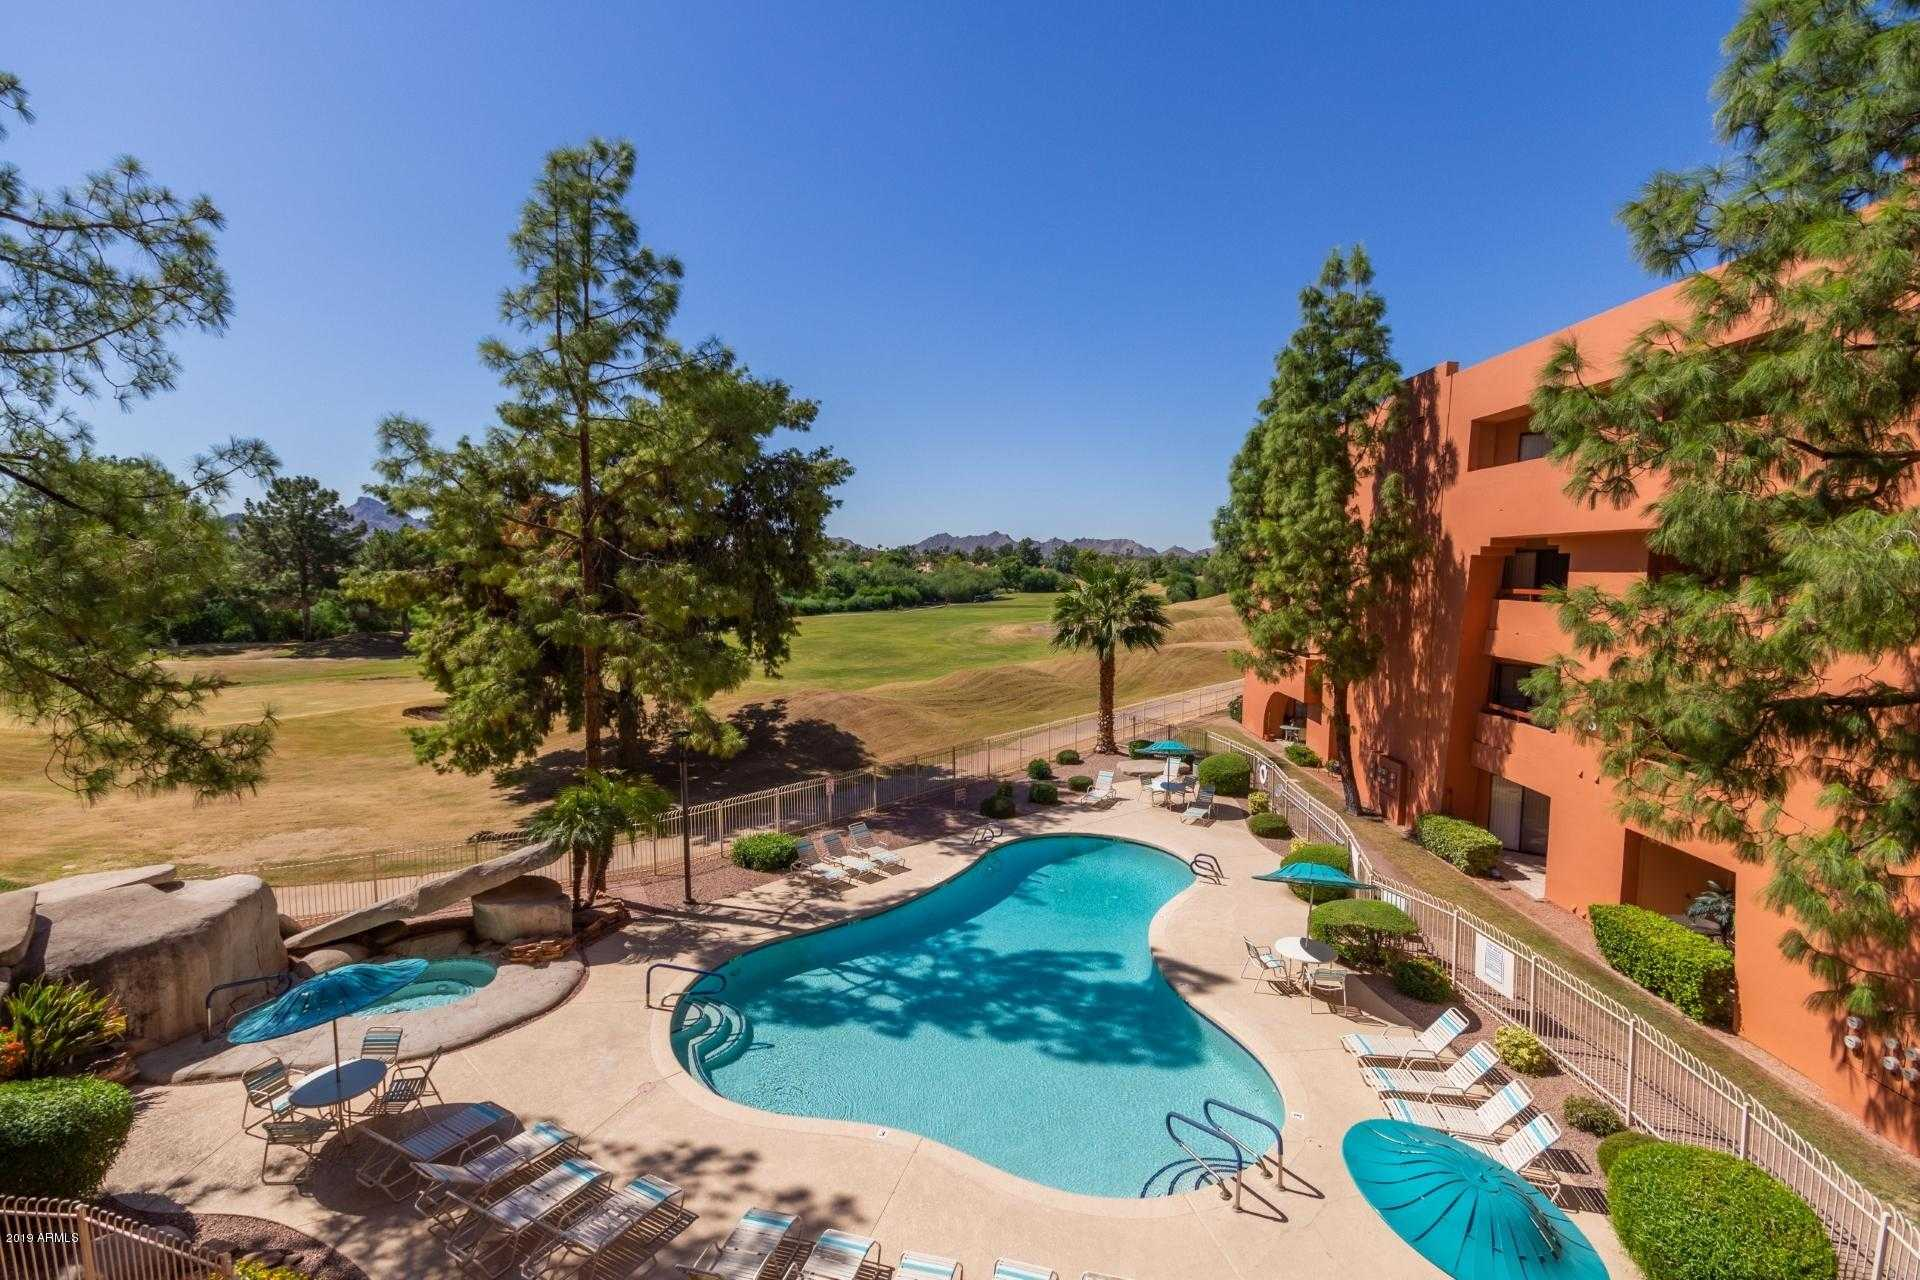 $280,000 - 2Br/2Ba -  for Sale in Anasazi Village Condo Units 1-604, Phoenix